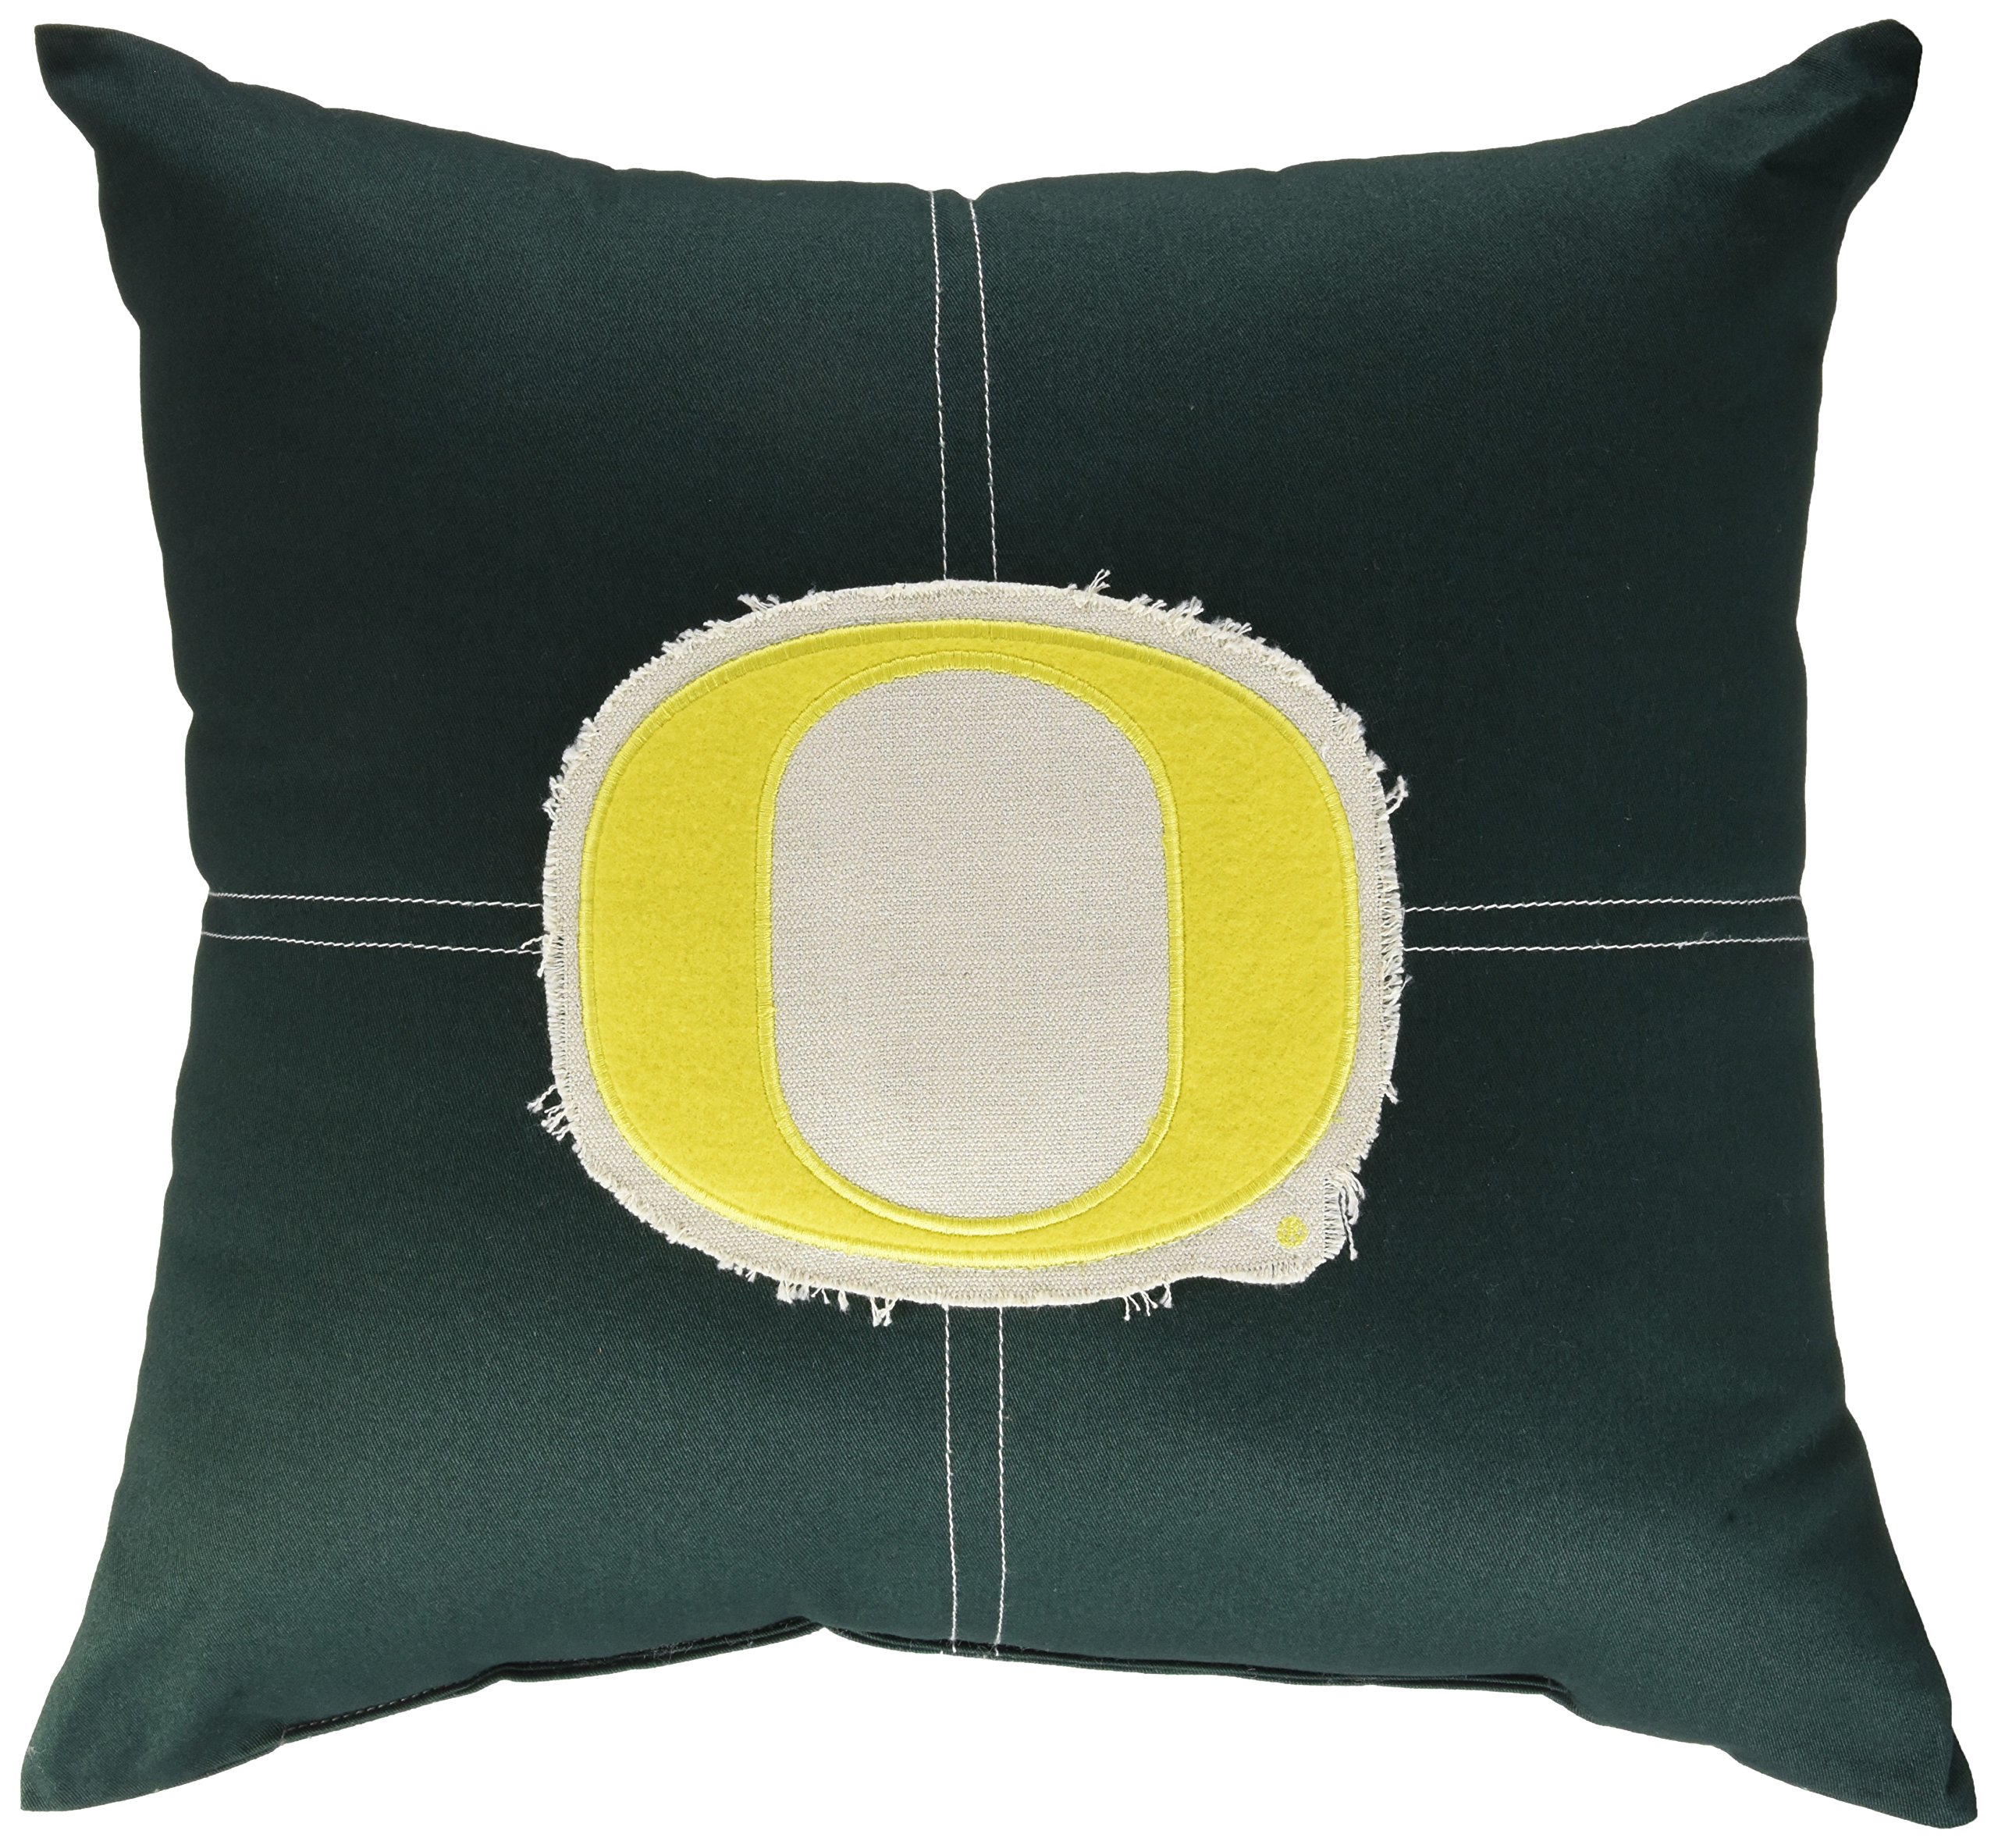 The Northwest Company Officially Licensed NCAA Oregon Ducks Letterman Pillow, 18'' x 18''